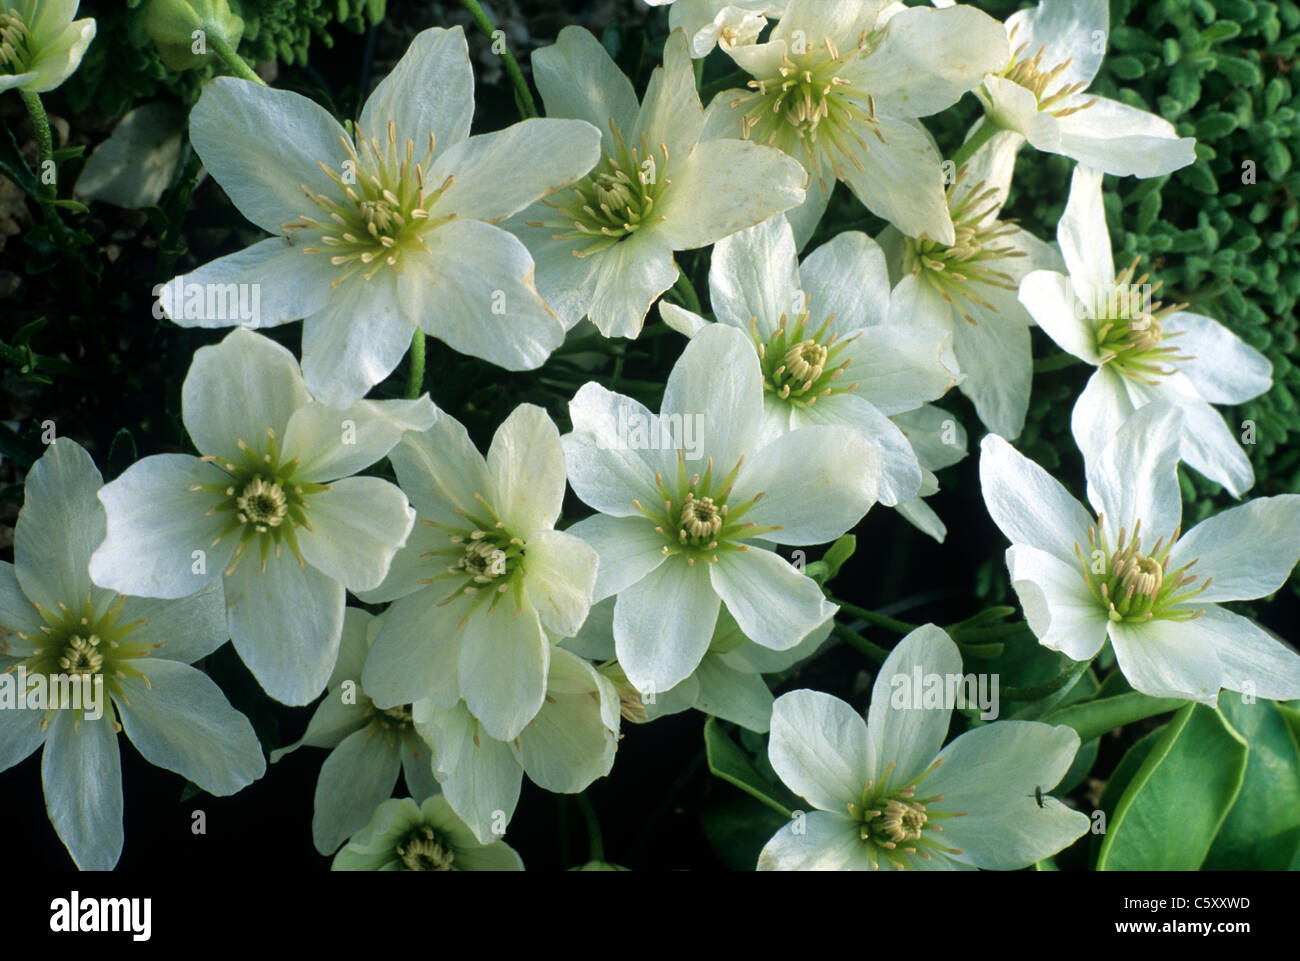 Clematis x cartmanii joe white flower flowers climbing plant clematis x cartmanii joe white flower flowers climbing plant garden plants mightylinksfo